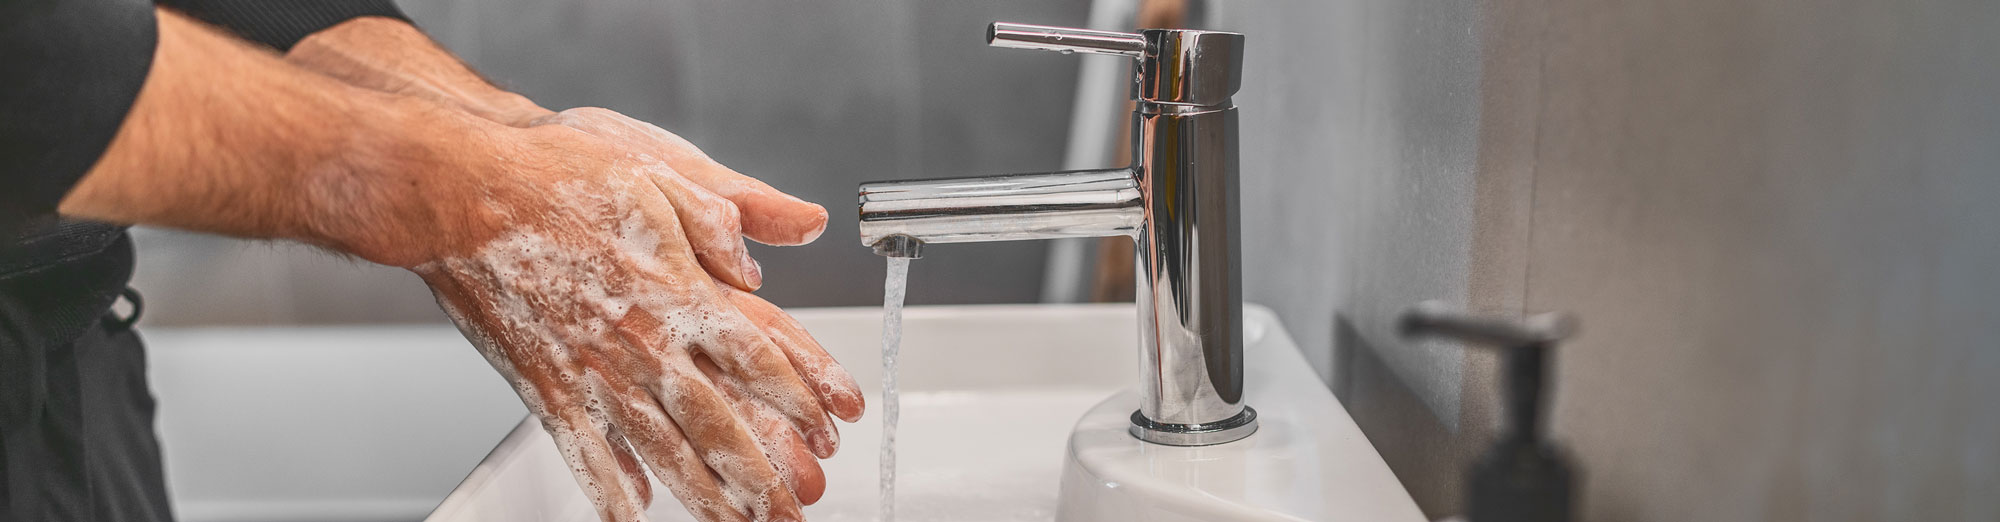 Coronavirus travel prevention wash hands with soap and hot water